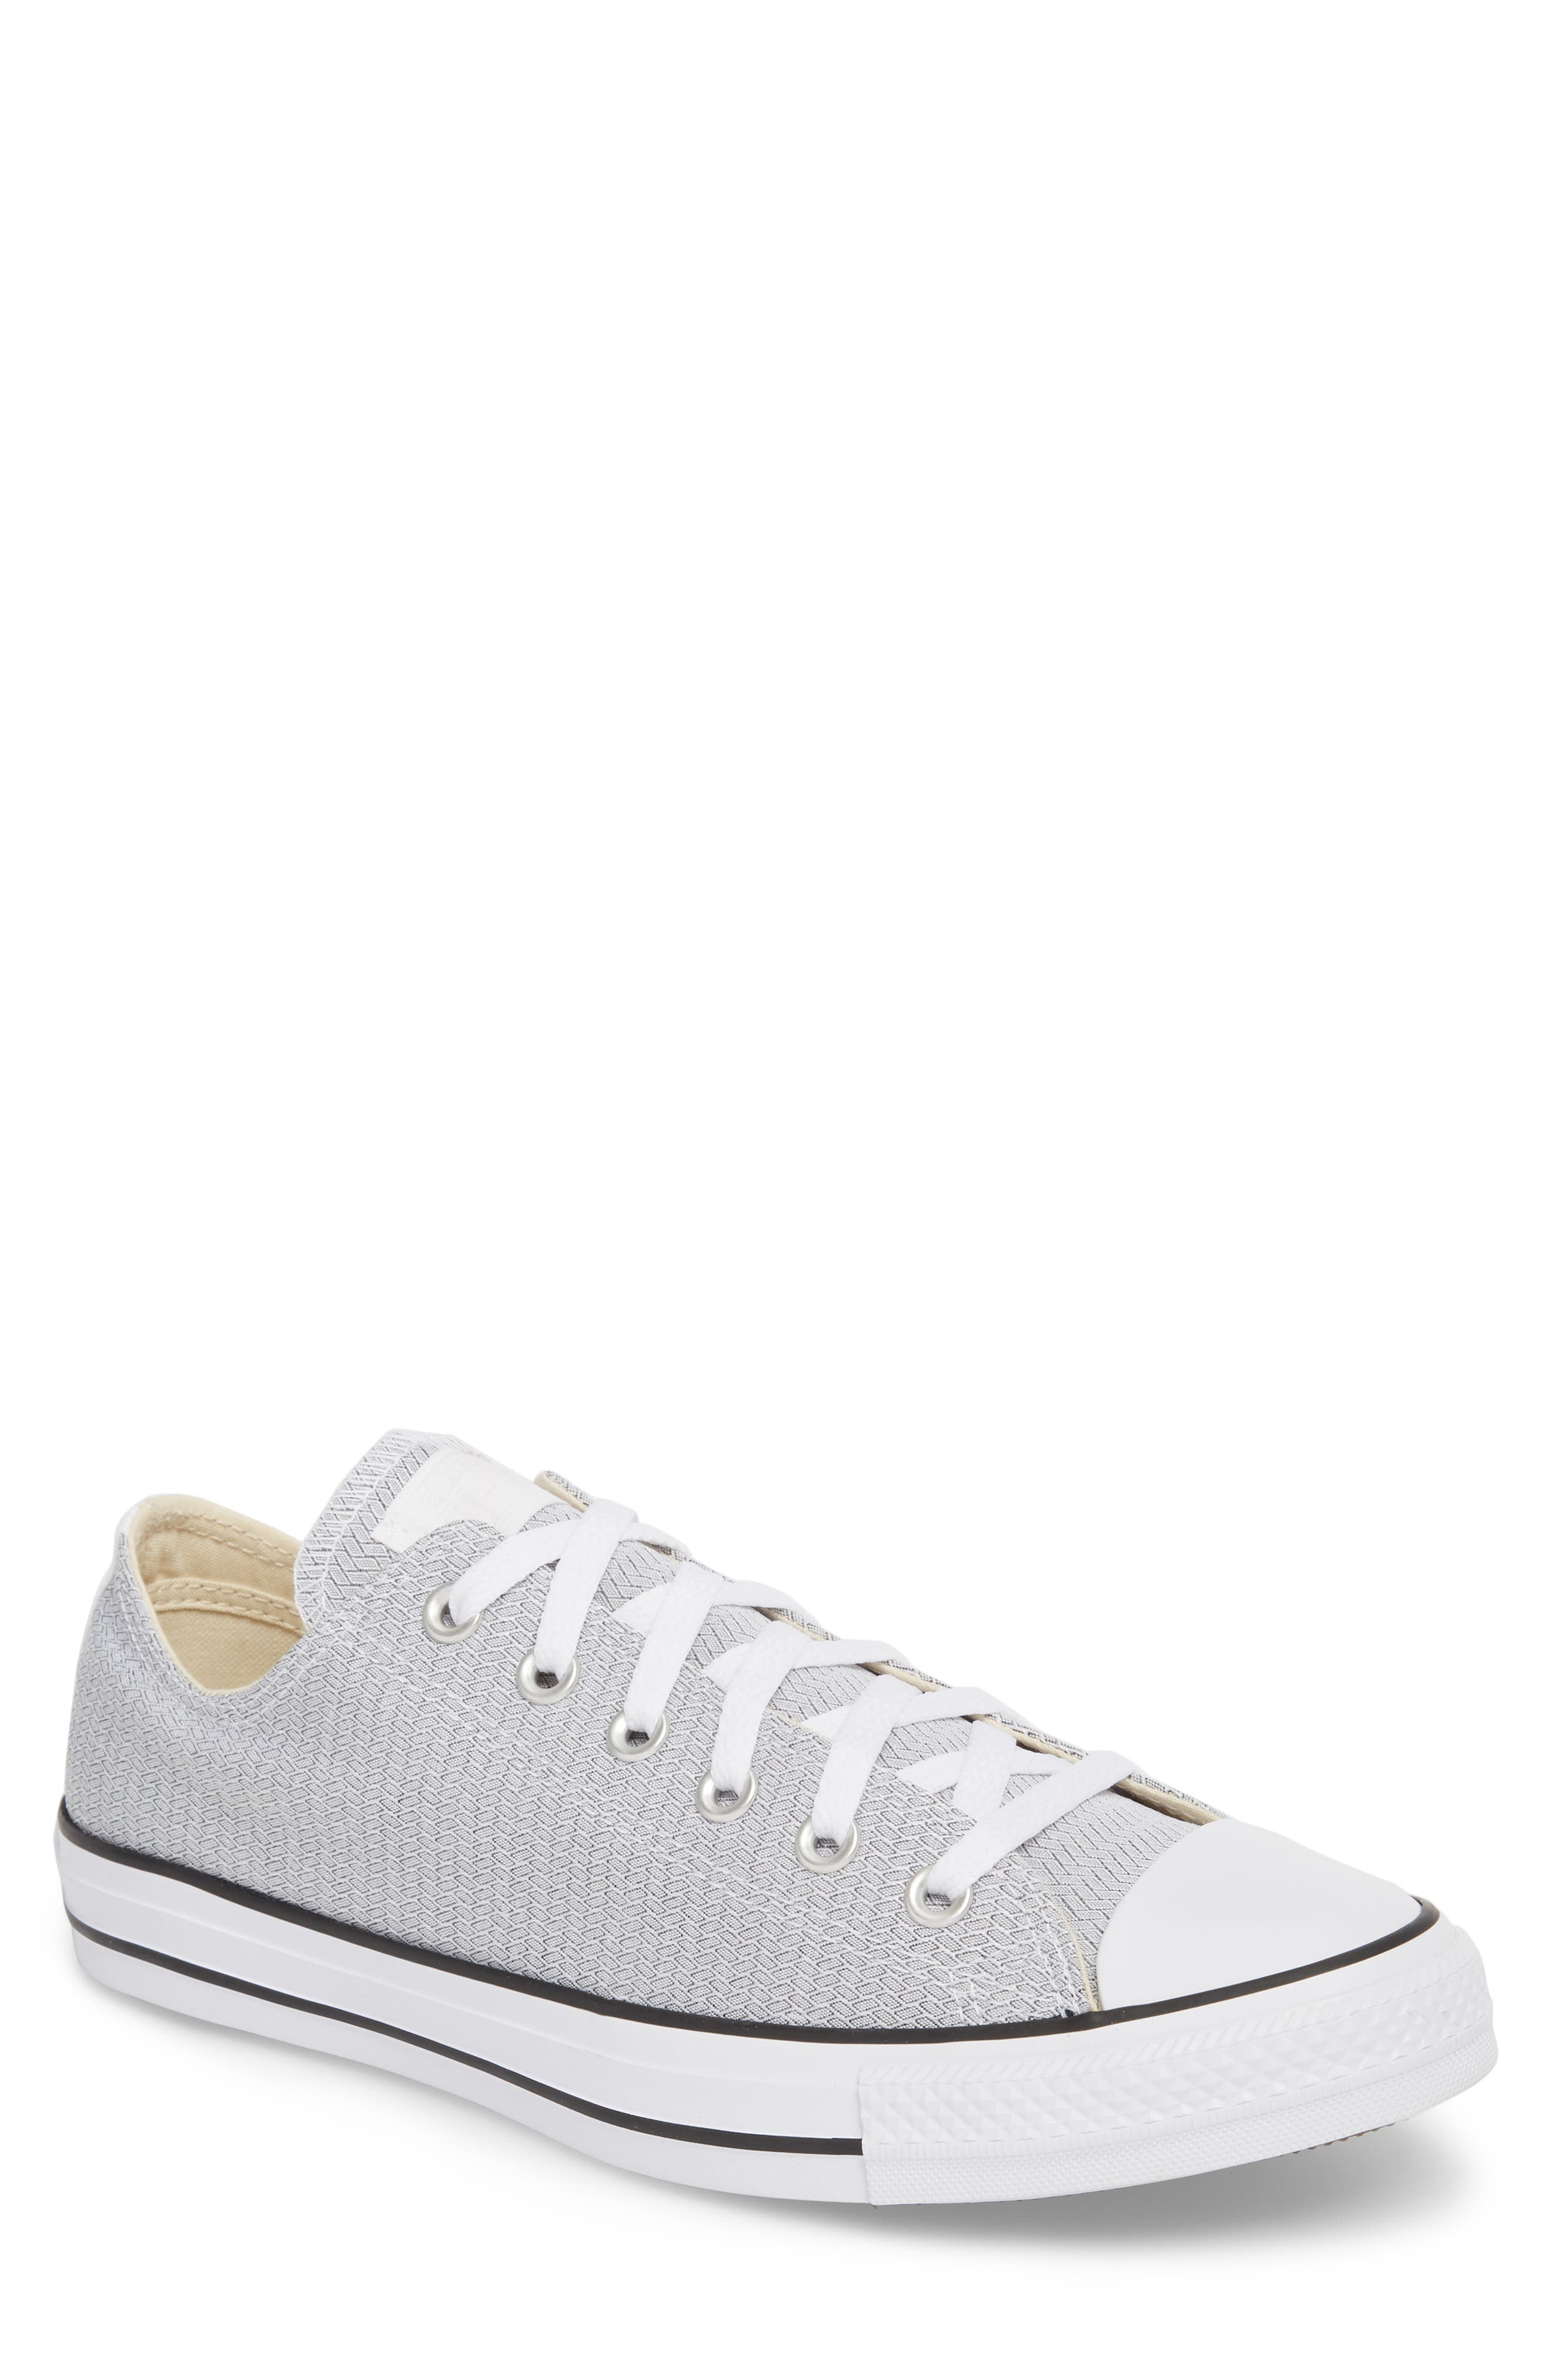 All Star<sup>®</sup> Ripstop Low Top Sneaker,                         Main,                         color,